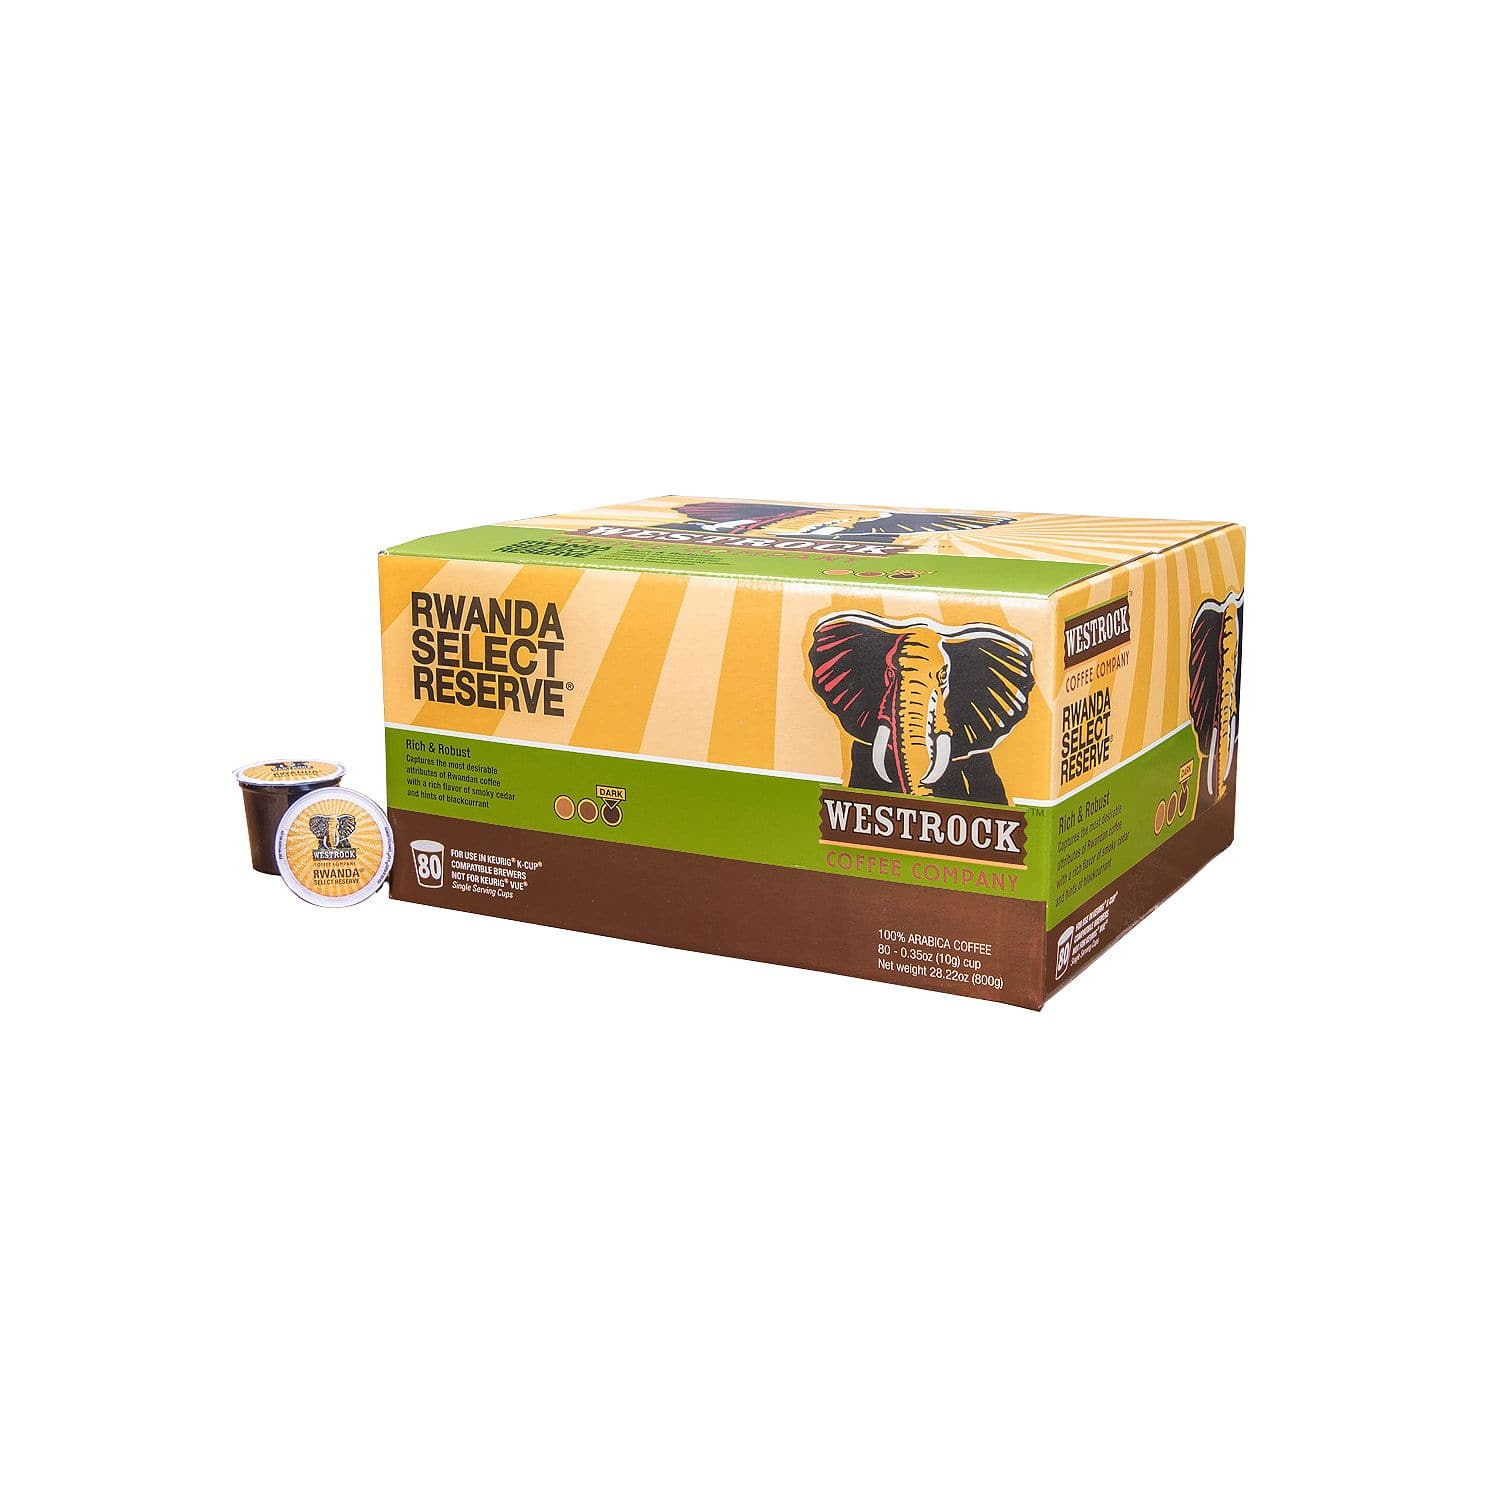 80-Count Westrock Coffee K-Cups (Rwanda Select Reserve, Meza Morning Blend, or East Africa Blend) for $22.98 + Free Shipping @ Sam's Club